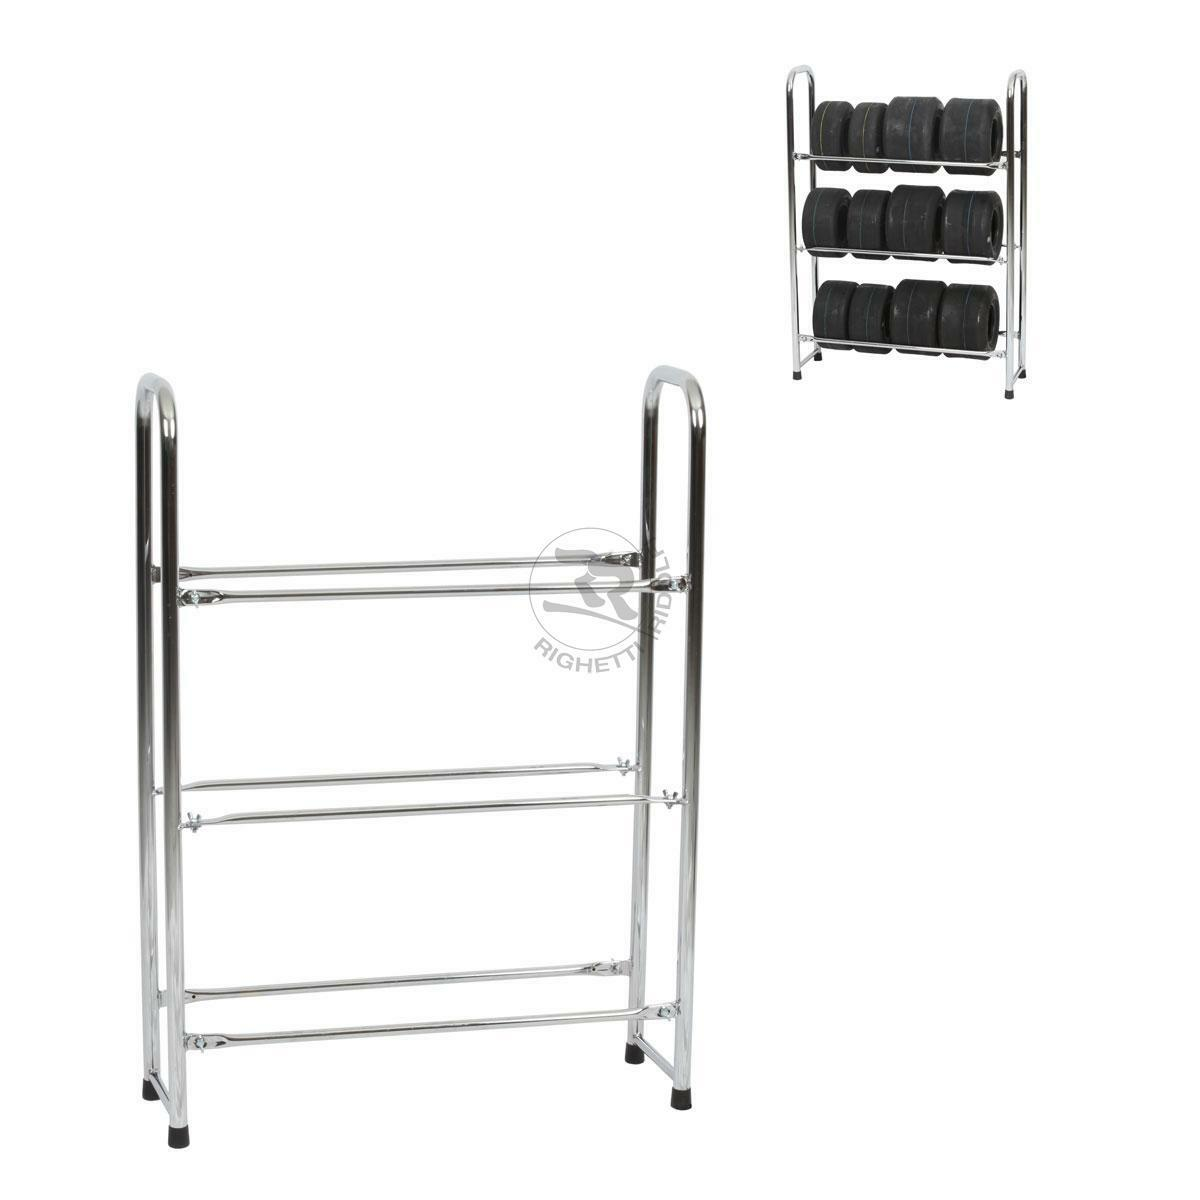 TYRE STAND/RACK